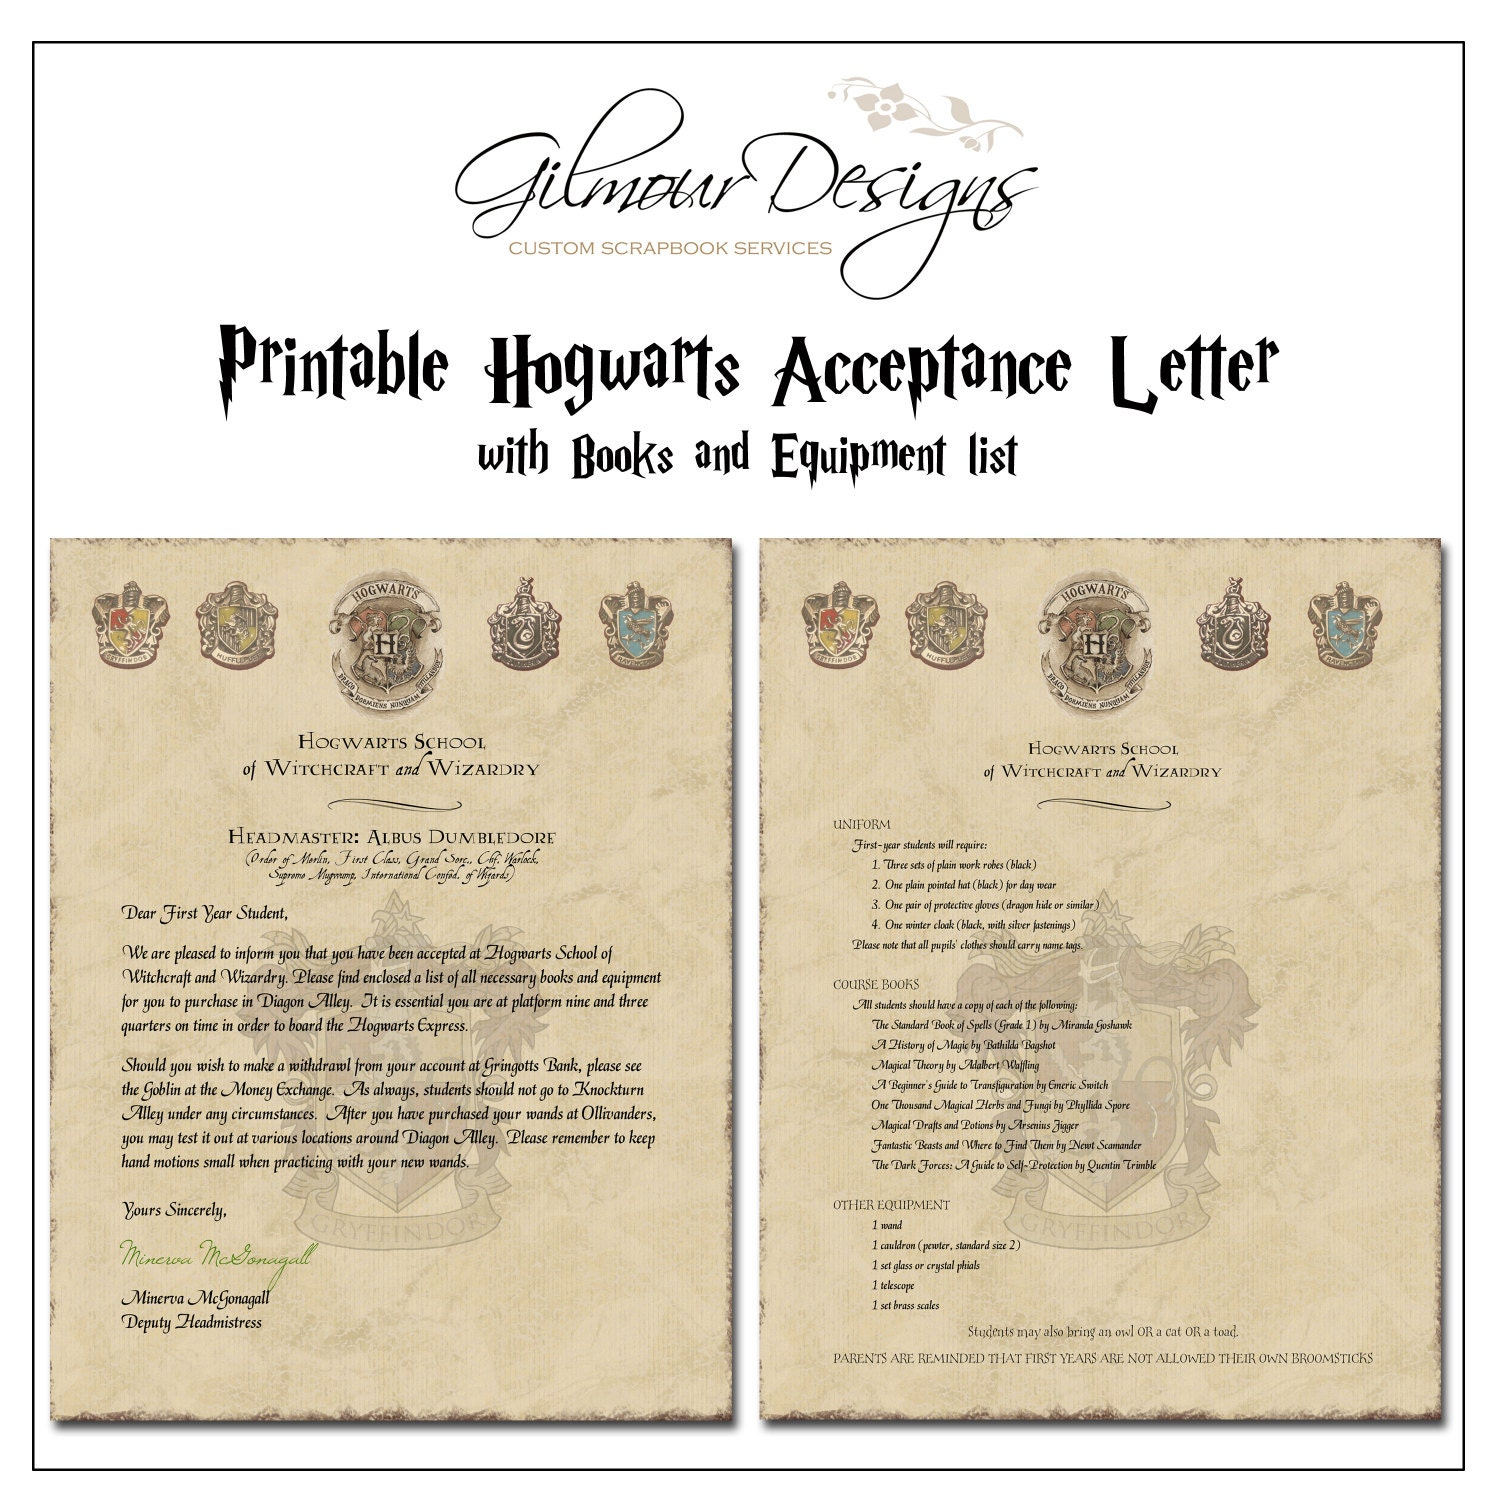 Stupendous image in hogwarts acceptance letter printable